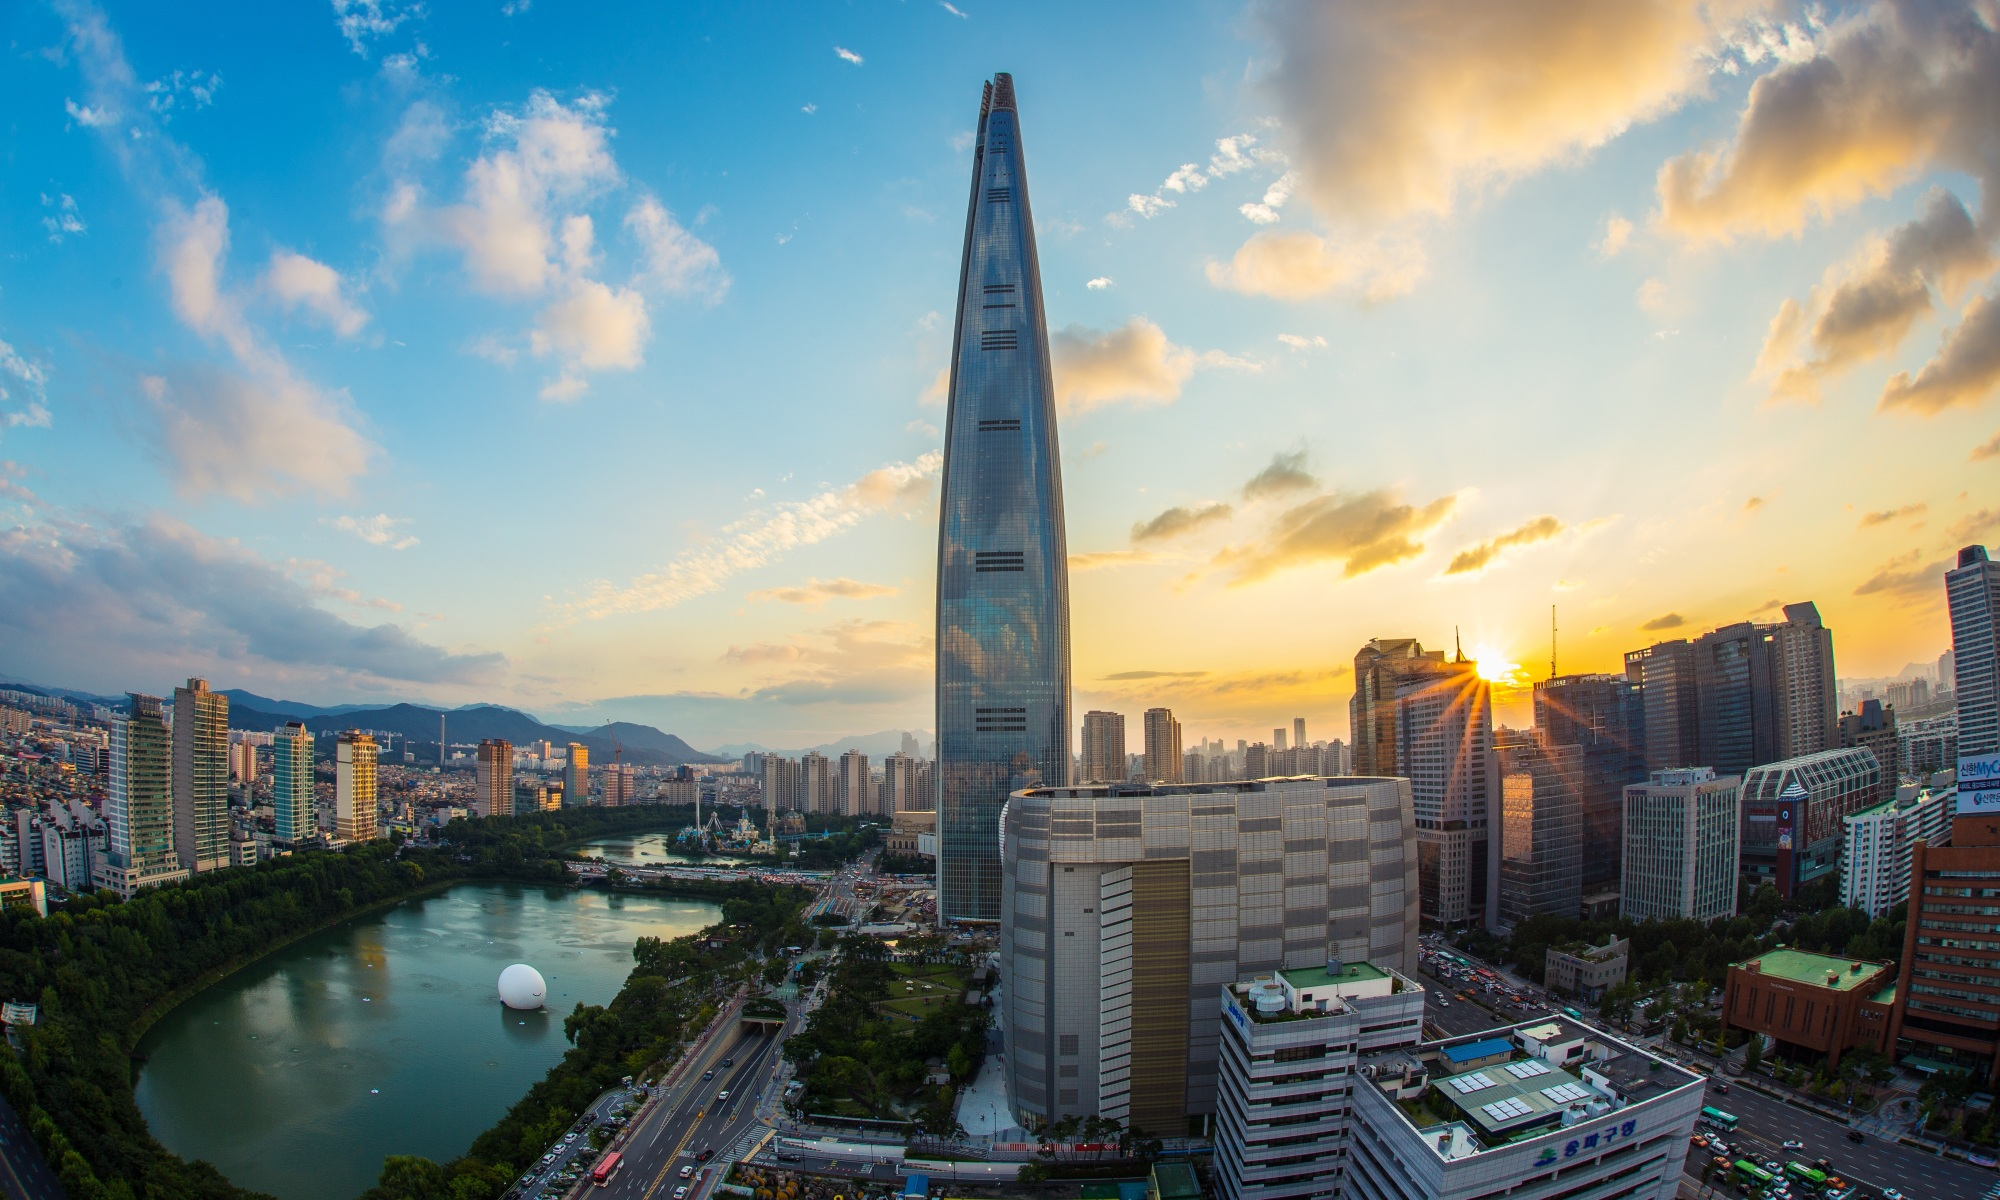 Seoul, South Korea. Lotte World Tower. Pexels.